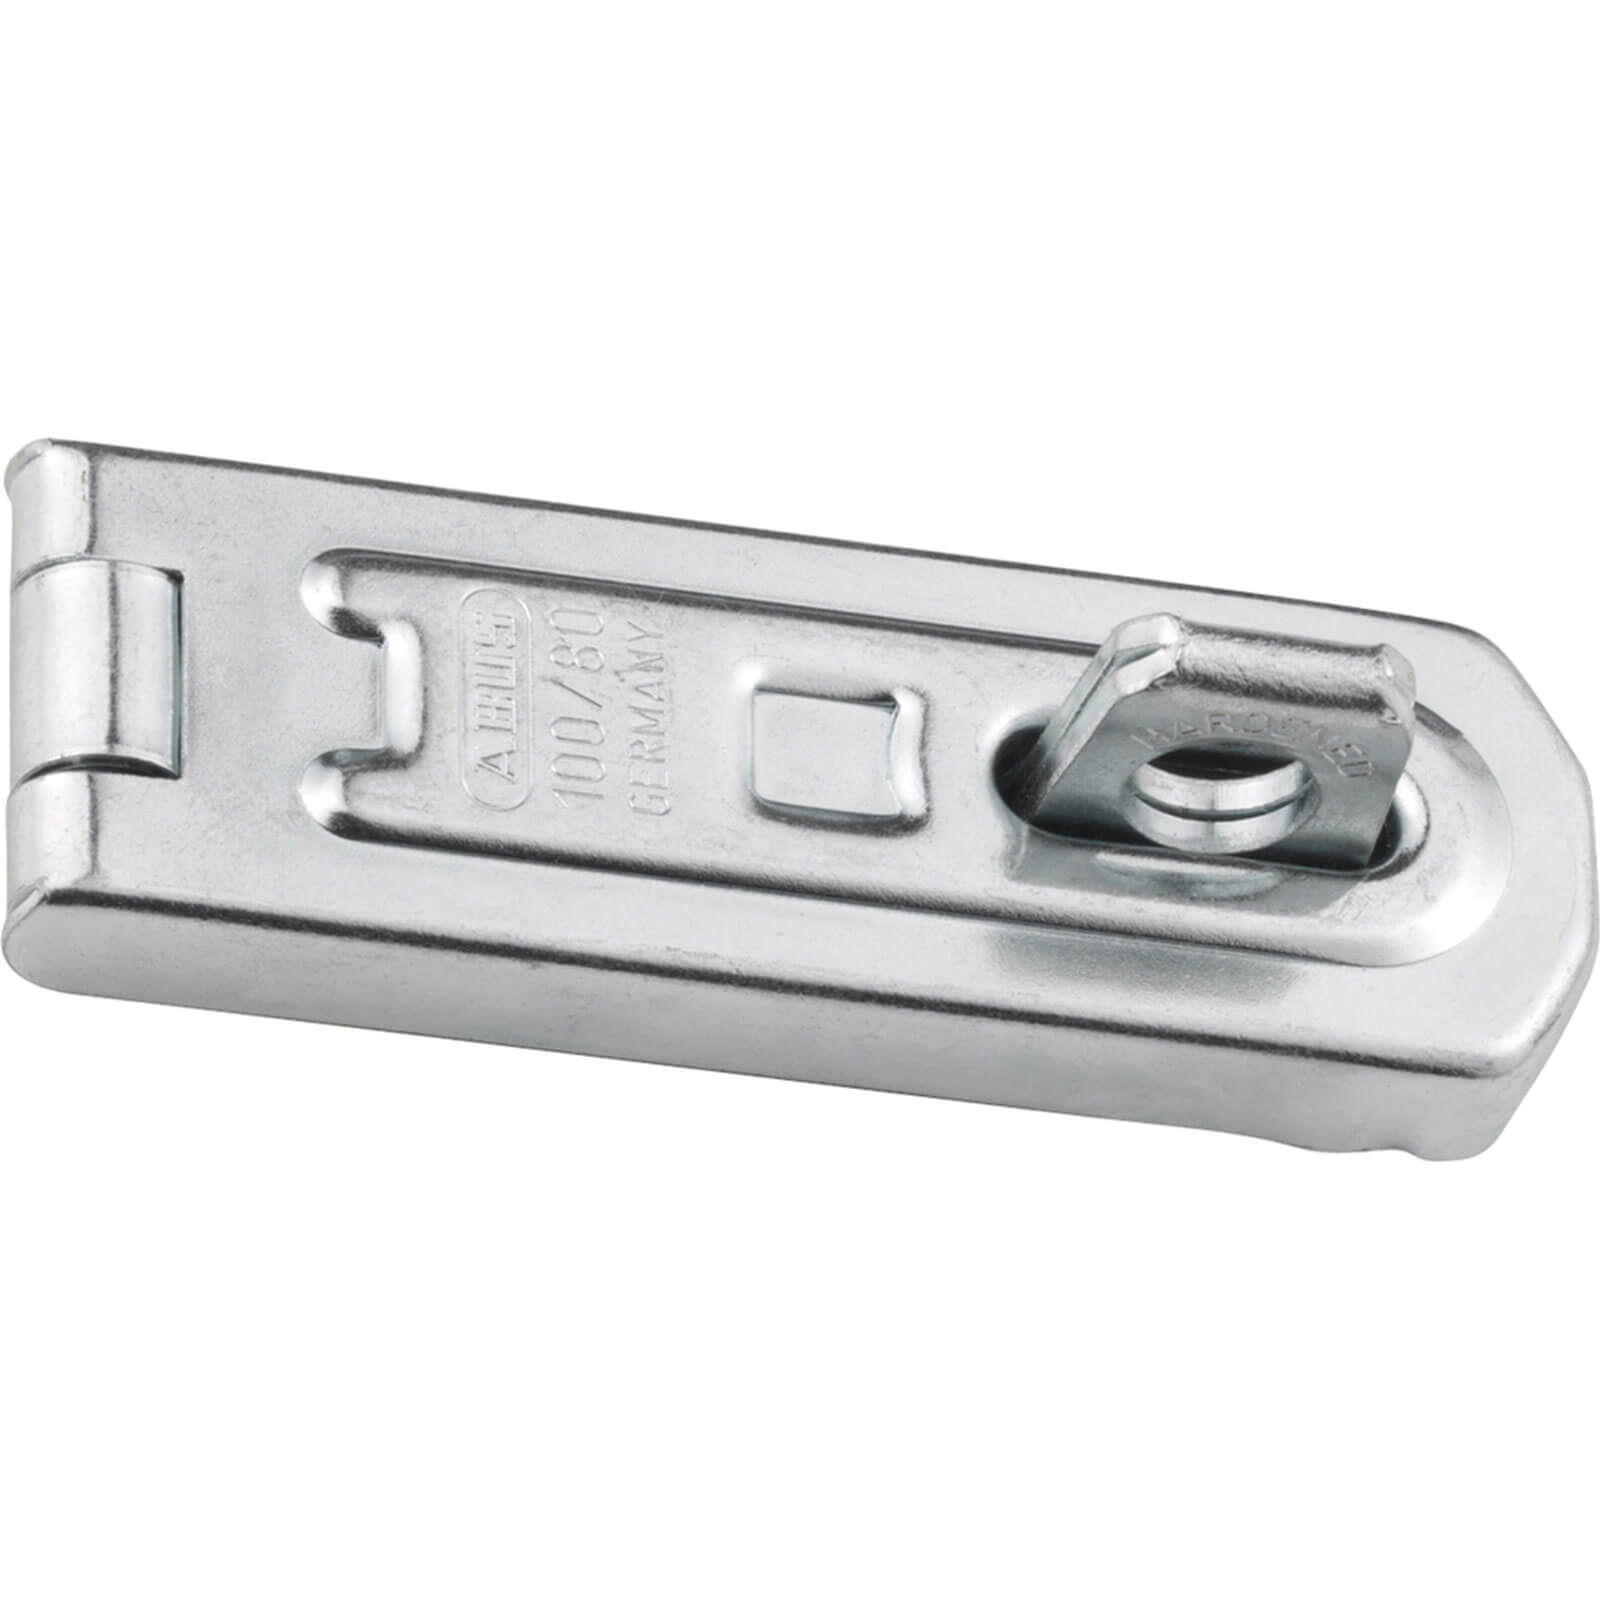 Compare prices for Abus 100 Series Tradition Hasp & Staple 80mm